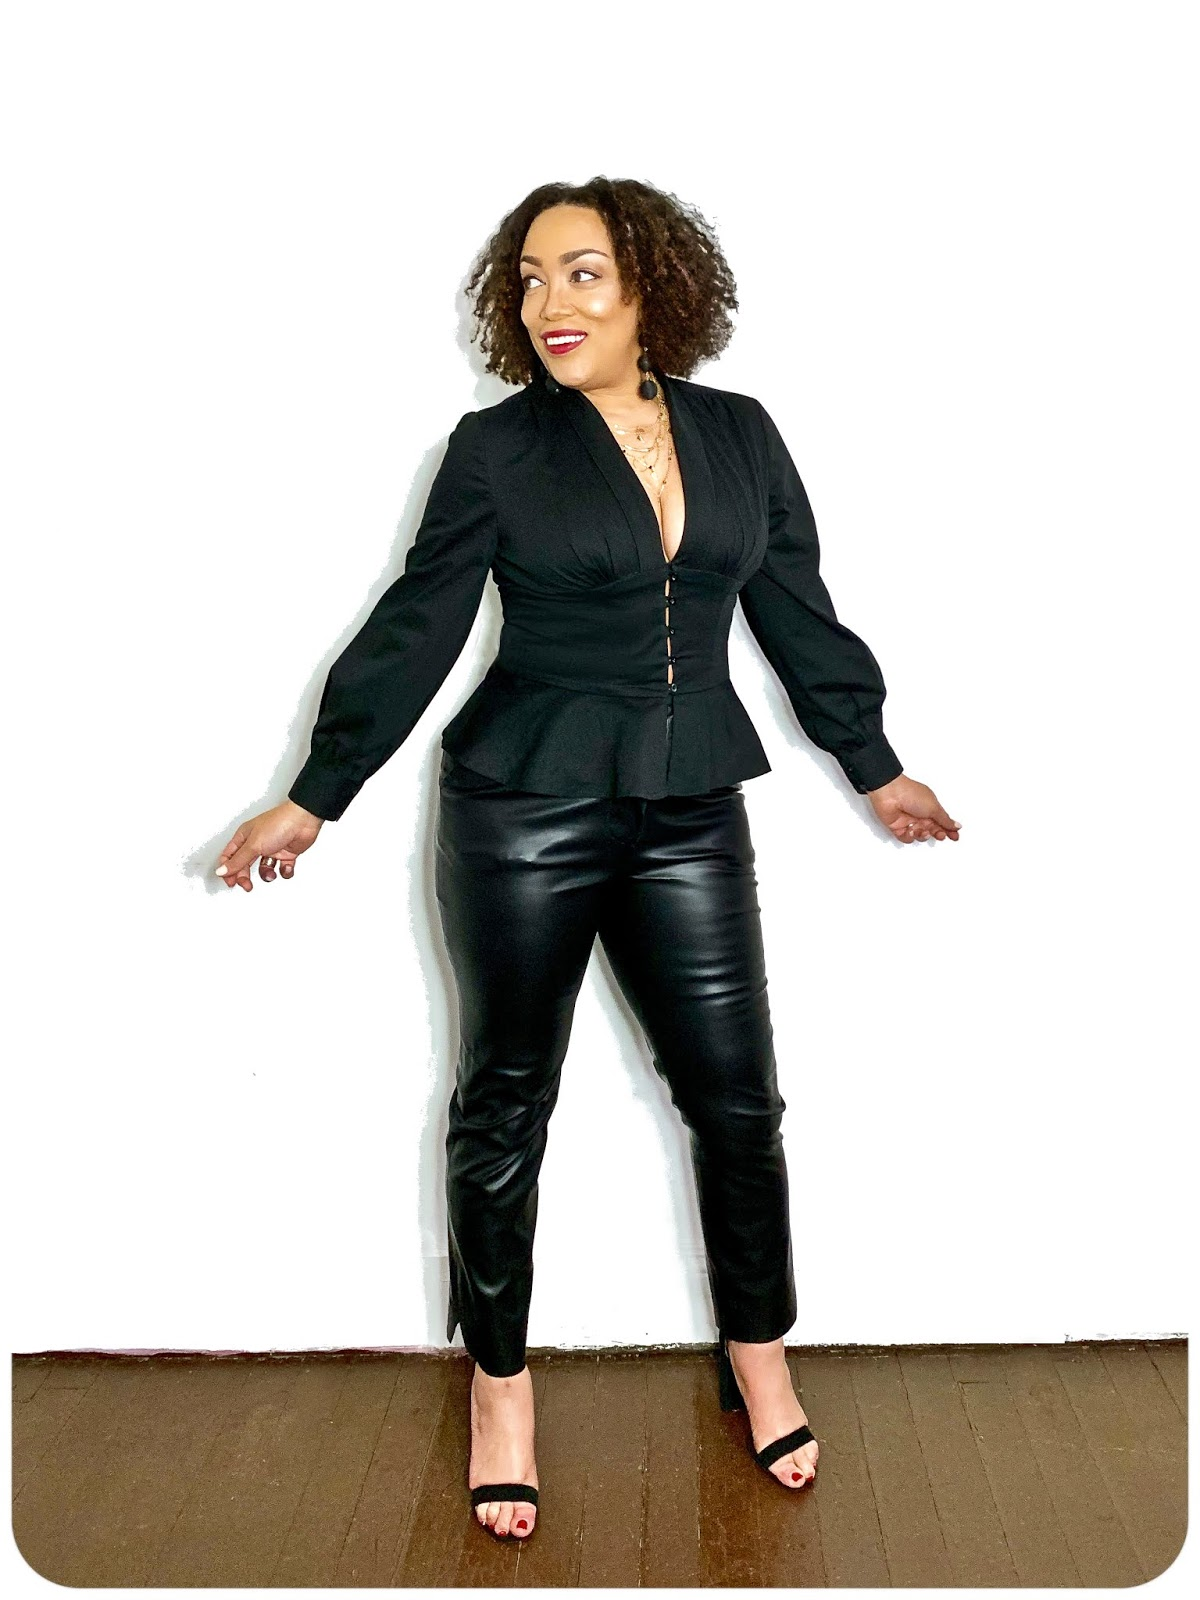 All Black Everything! Top: McCall's 7978 and Pants: Simplicity 8749 -- Erica Bunker DIY Style!